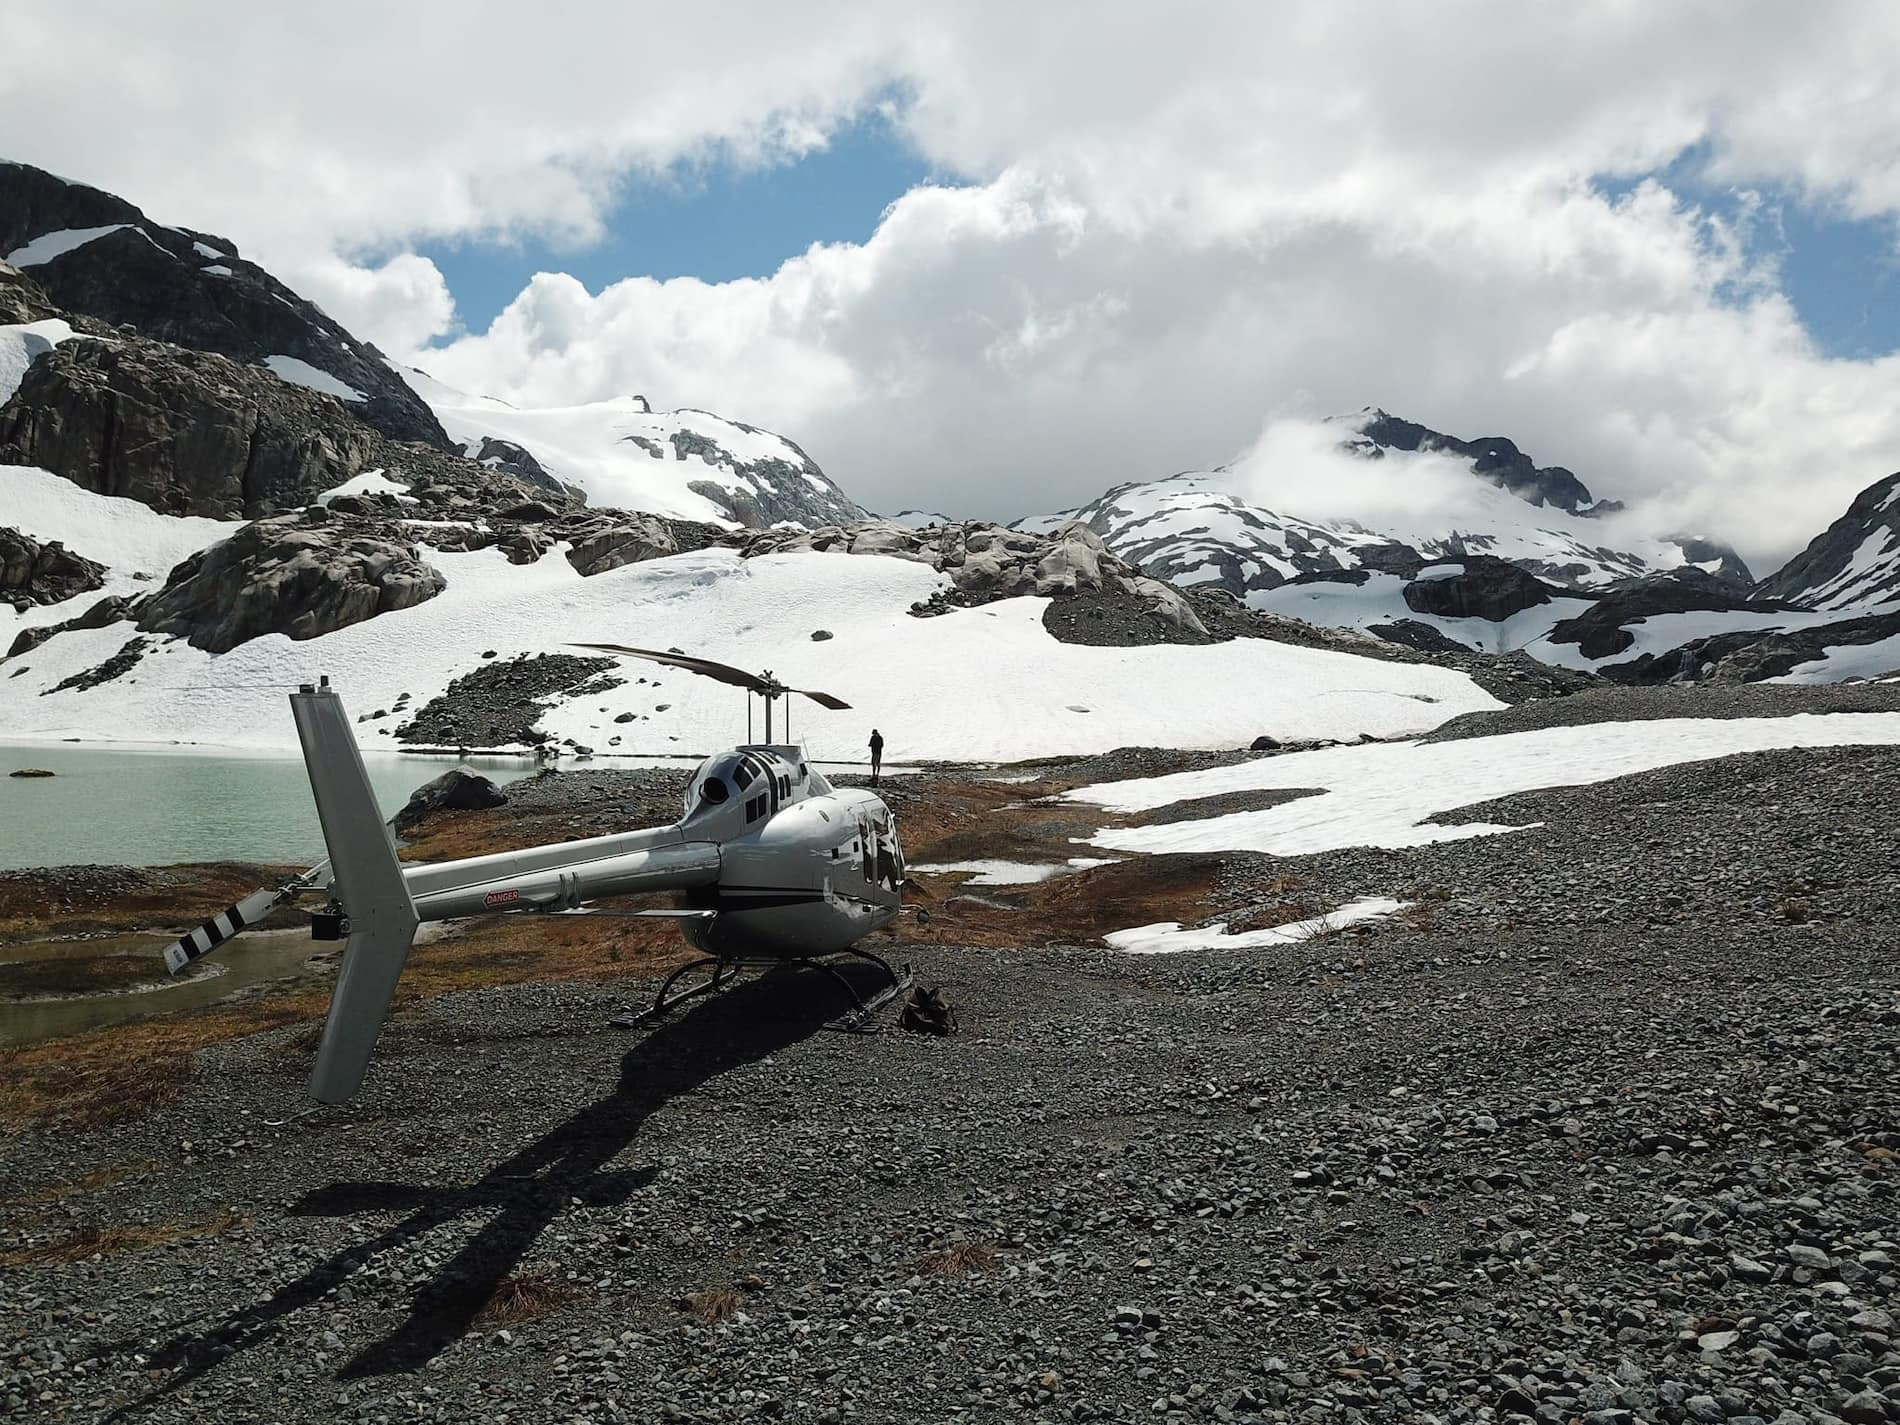 Rotores Rocky Mountain Bell505